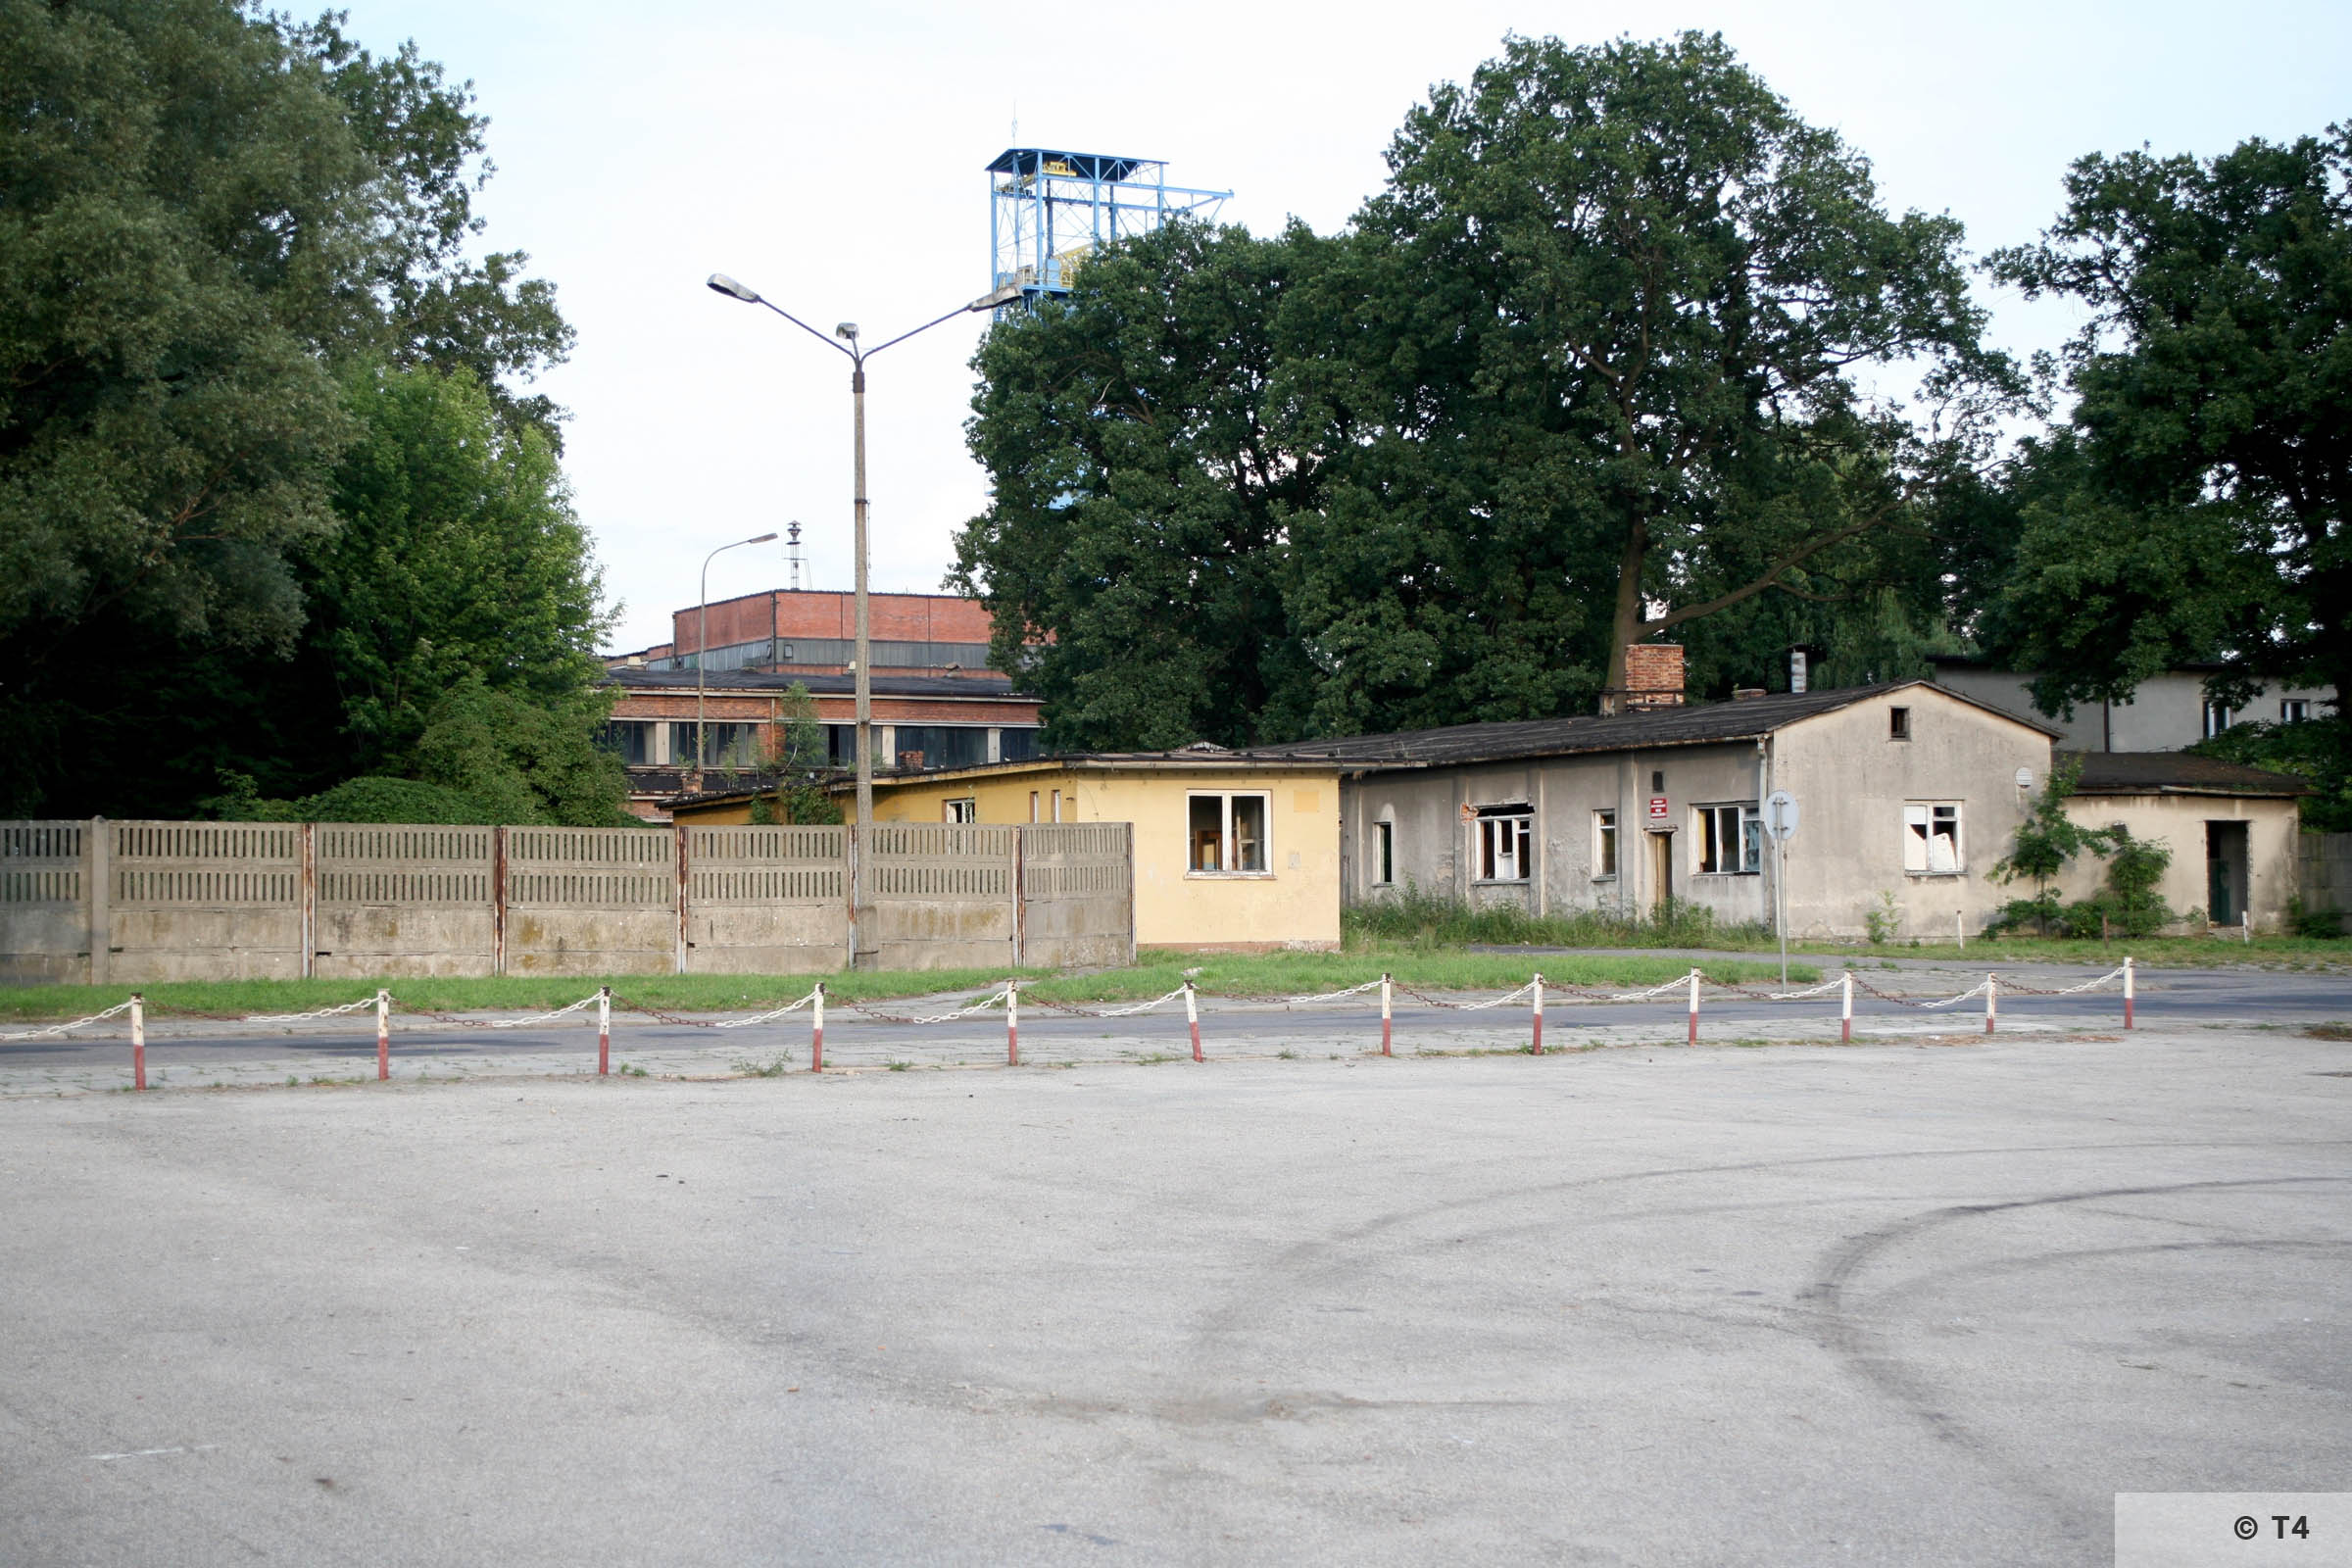 Andrzej III mine shaft in Jawiszowice. Hoisting tower. Barracks in front. 2007 T4 9042